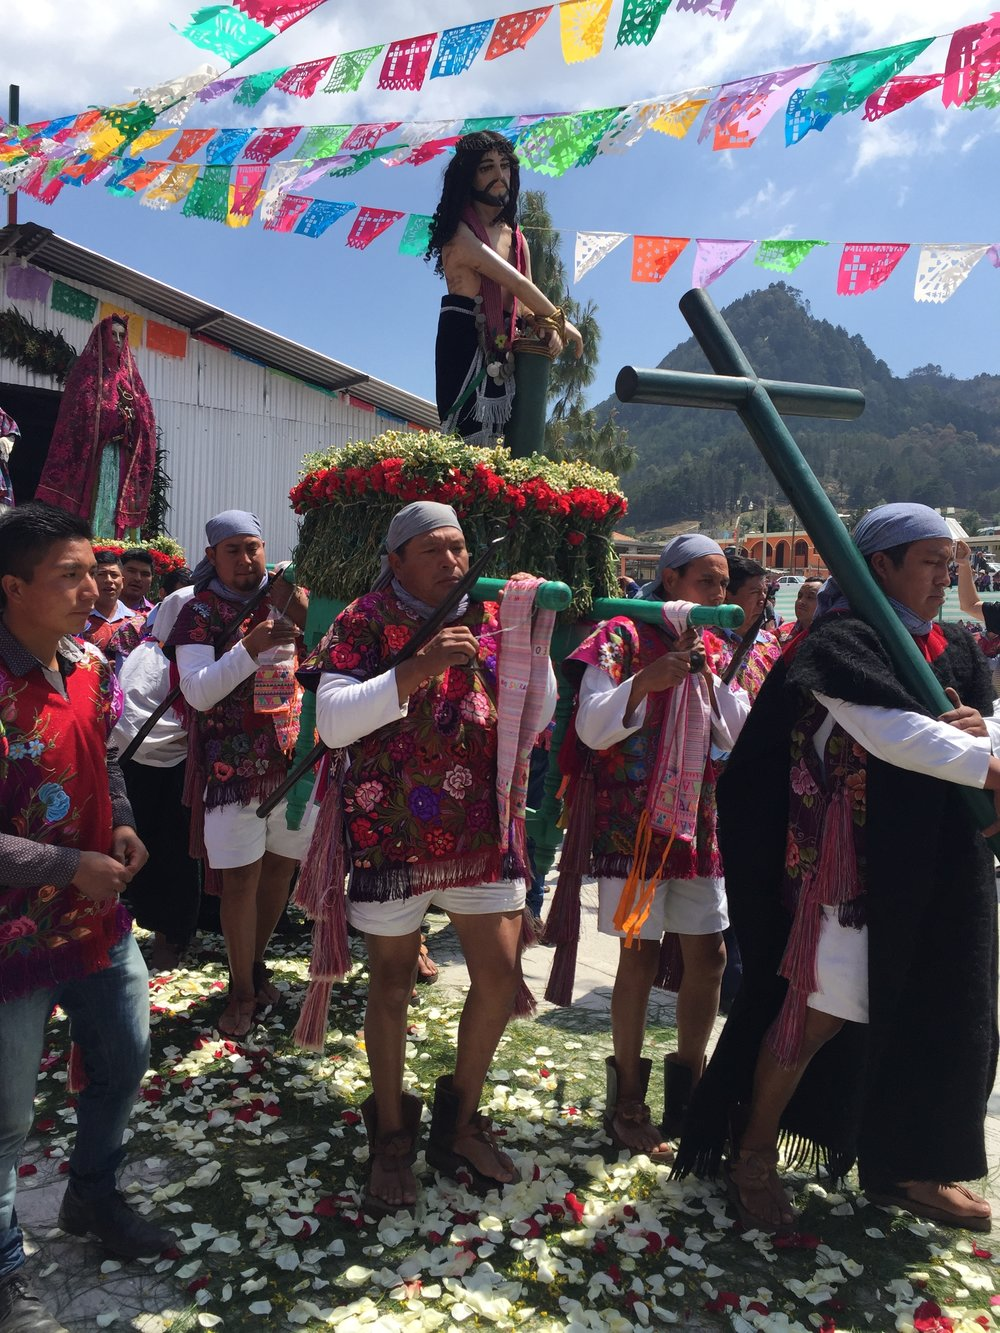 We were lucky to observe this annual ceremony for lent in San Lorenzo Zinacantan village where all the men an women dress in their beautifully embroidered traditional clothing of purple and magenta.